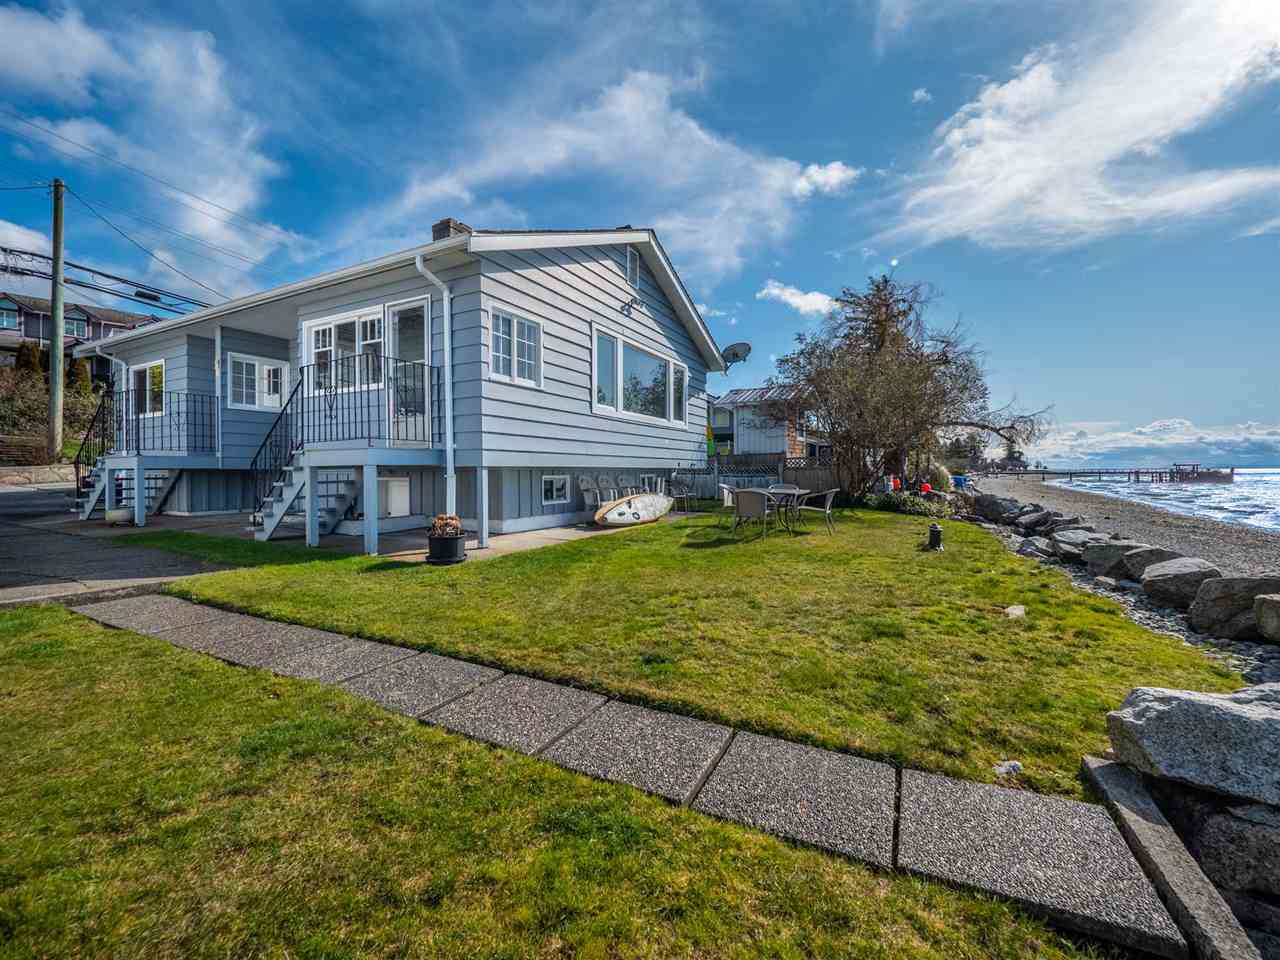 Main Photo: 4825 SUNSHINE COAST Highway in Sechelt: Sechelt District House for sale (Sunshine Coast)  : MLS®# R2440532